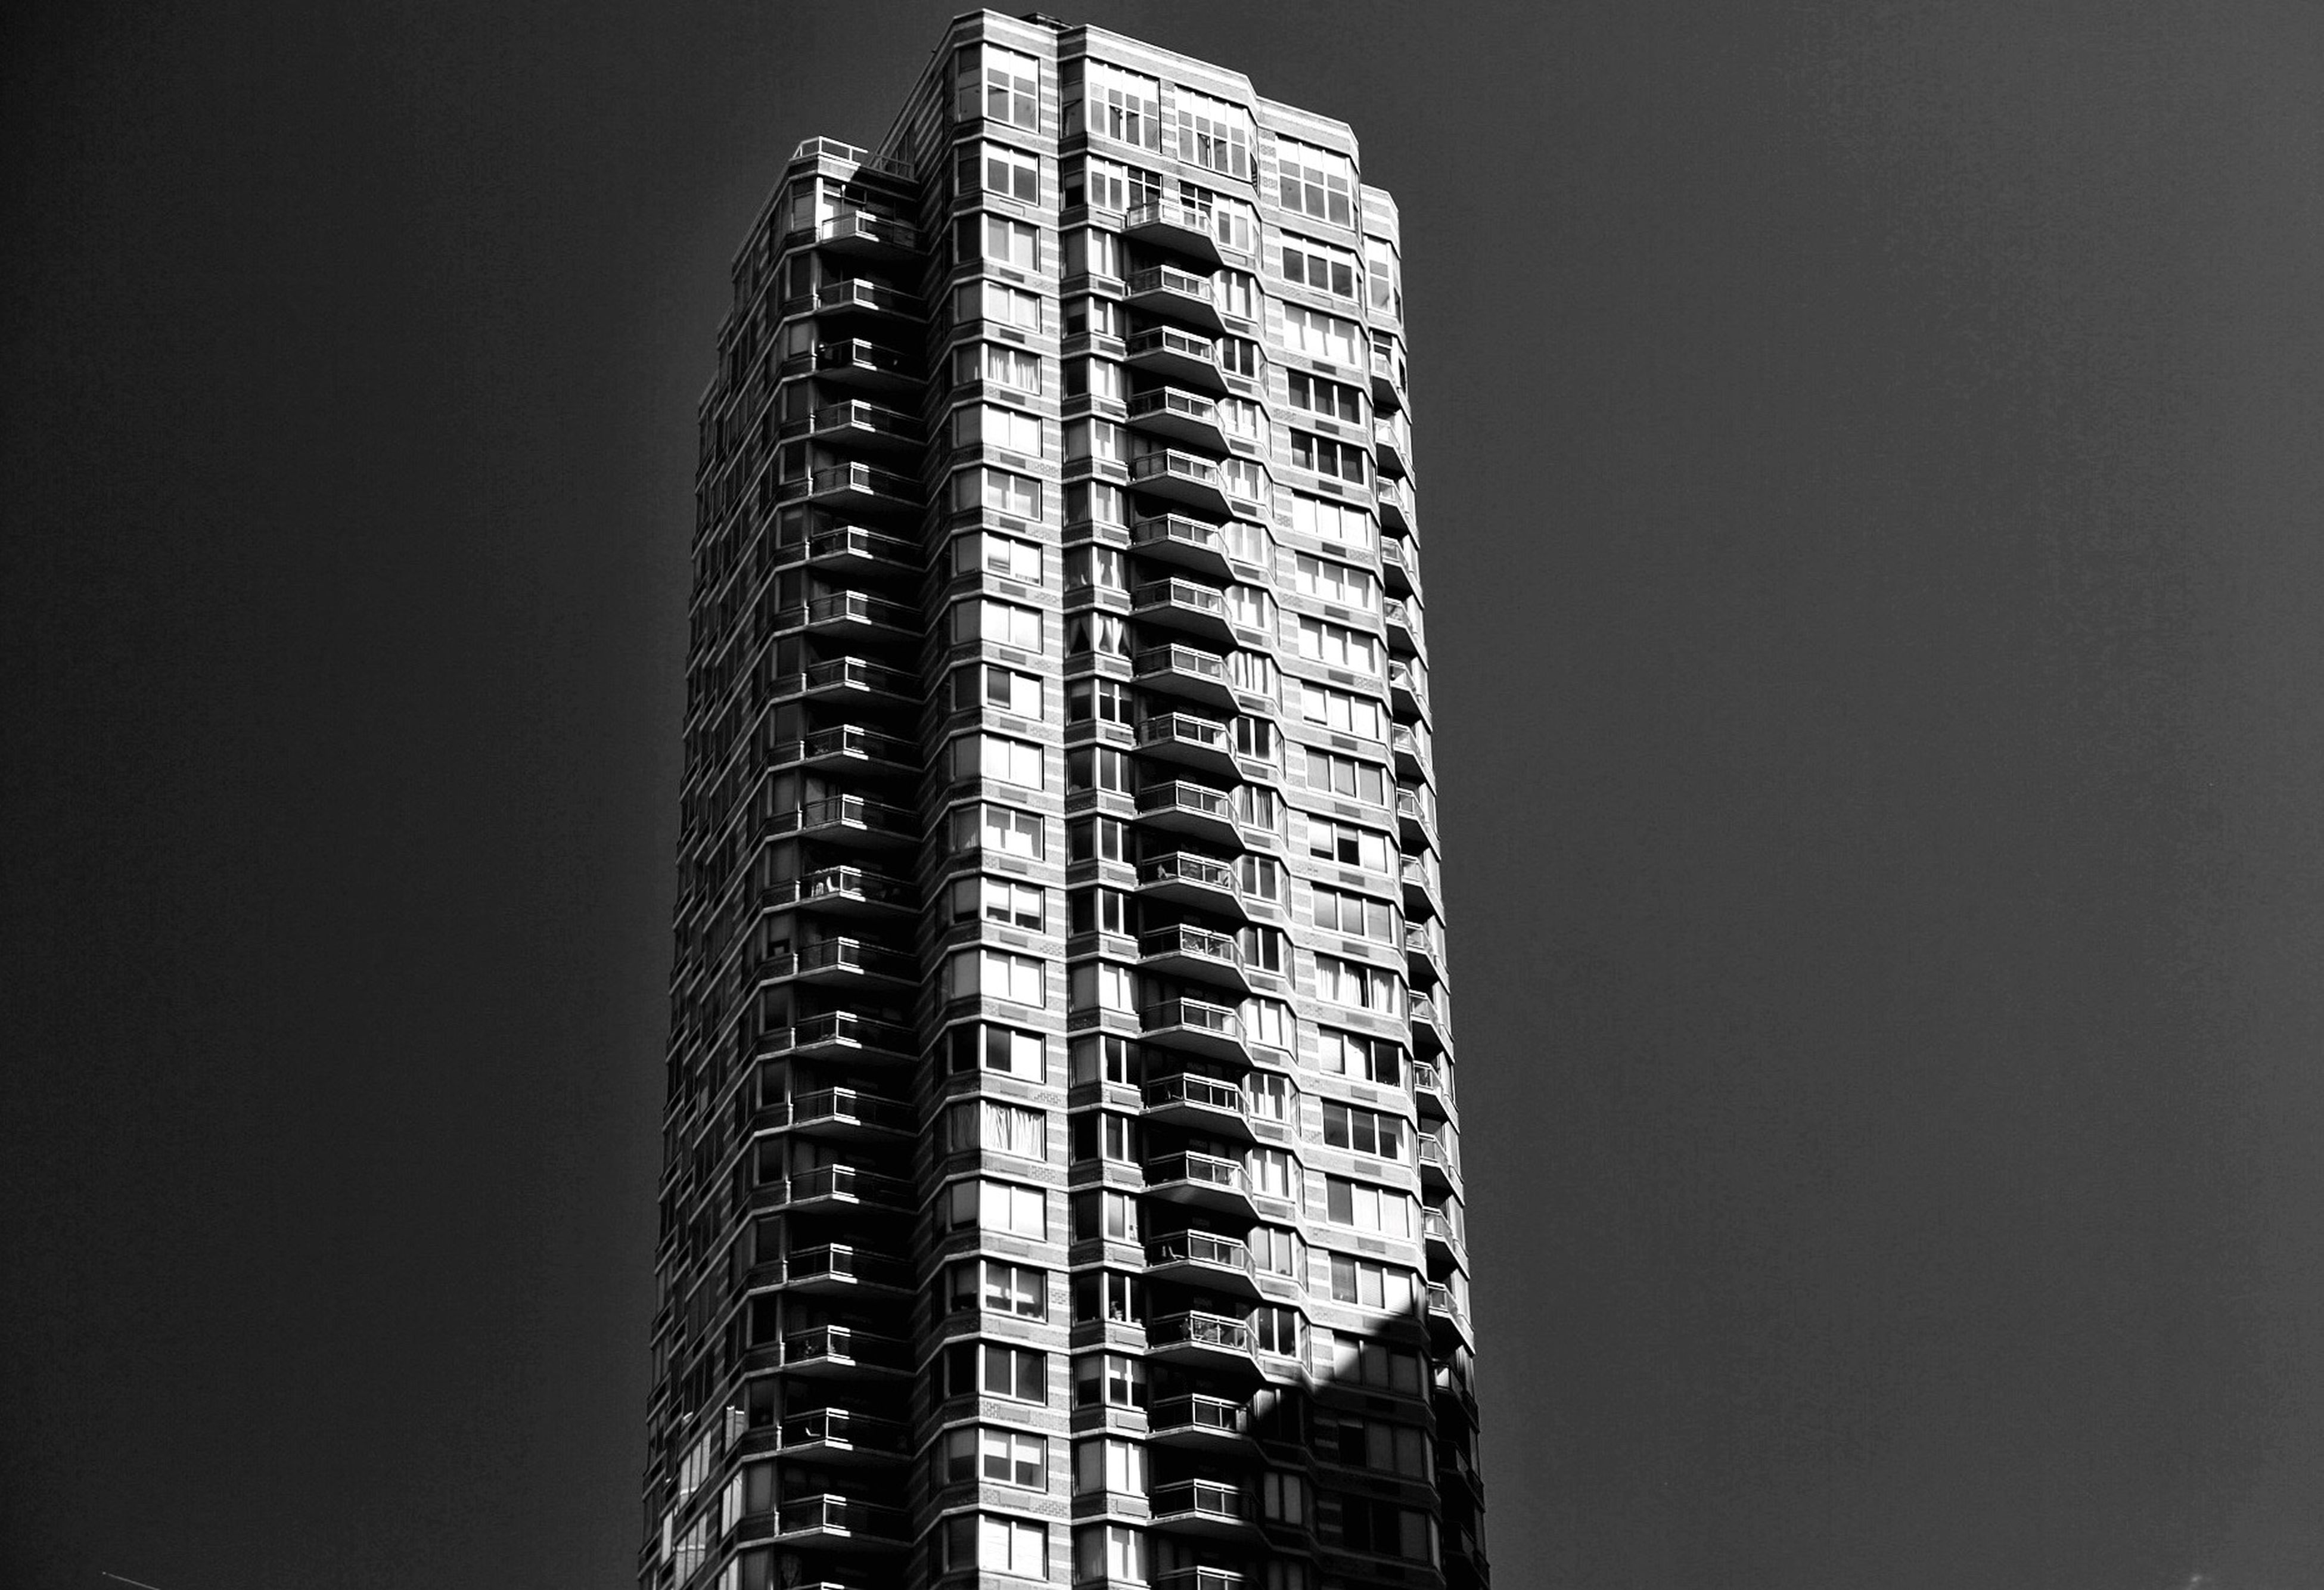 architecture, building exterior, built structure, tall - high, city, skyscraper, low angle view, tower, modern, sky, apartment, building story, office building, outdoors, tall, development, urban skyline, city life, financial district, no people, residential district, capital cities, architectural feature